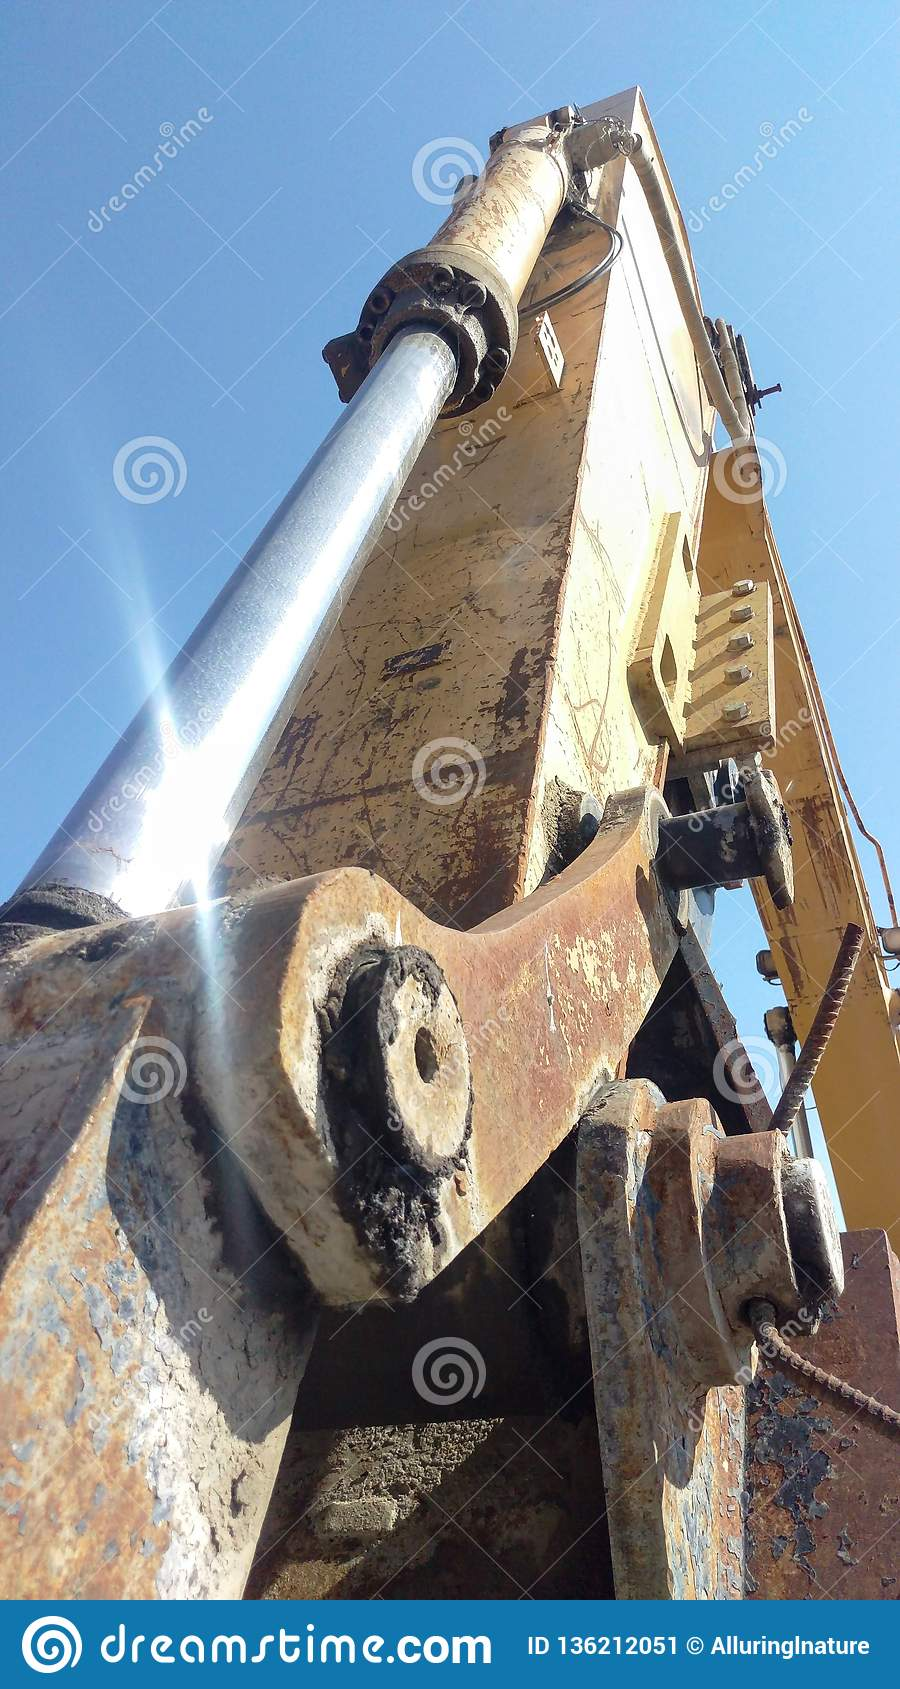 Excavator Boom And Hydraulic Cylinder Stock Image - Image of